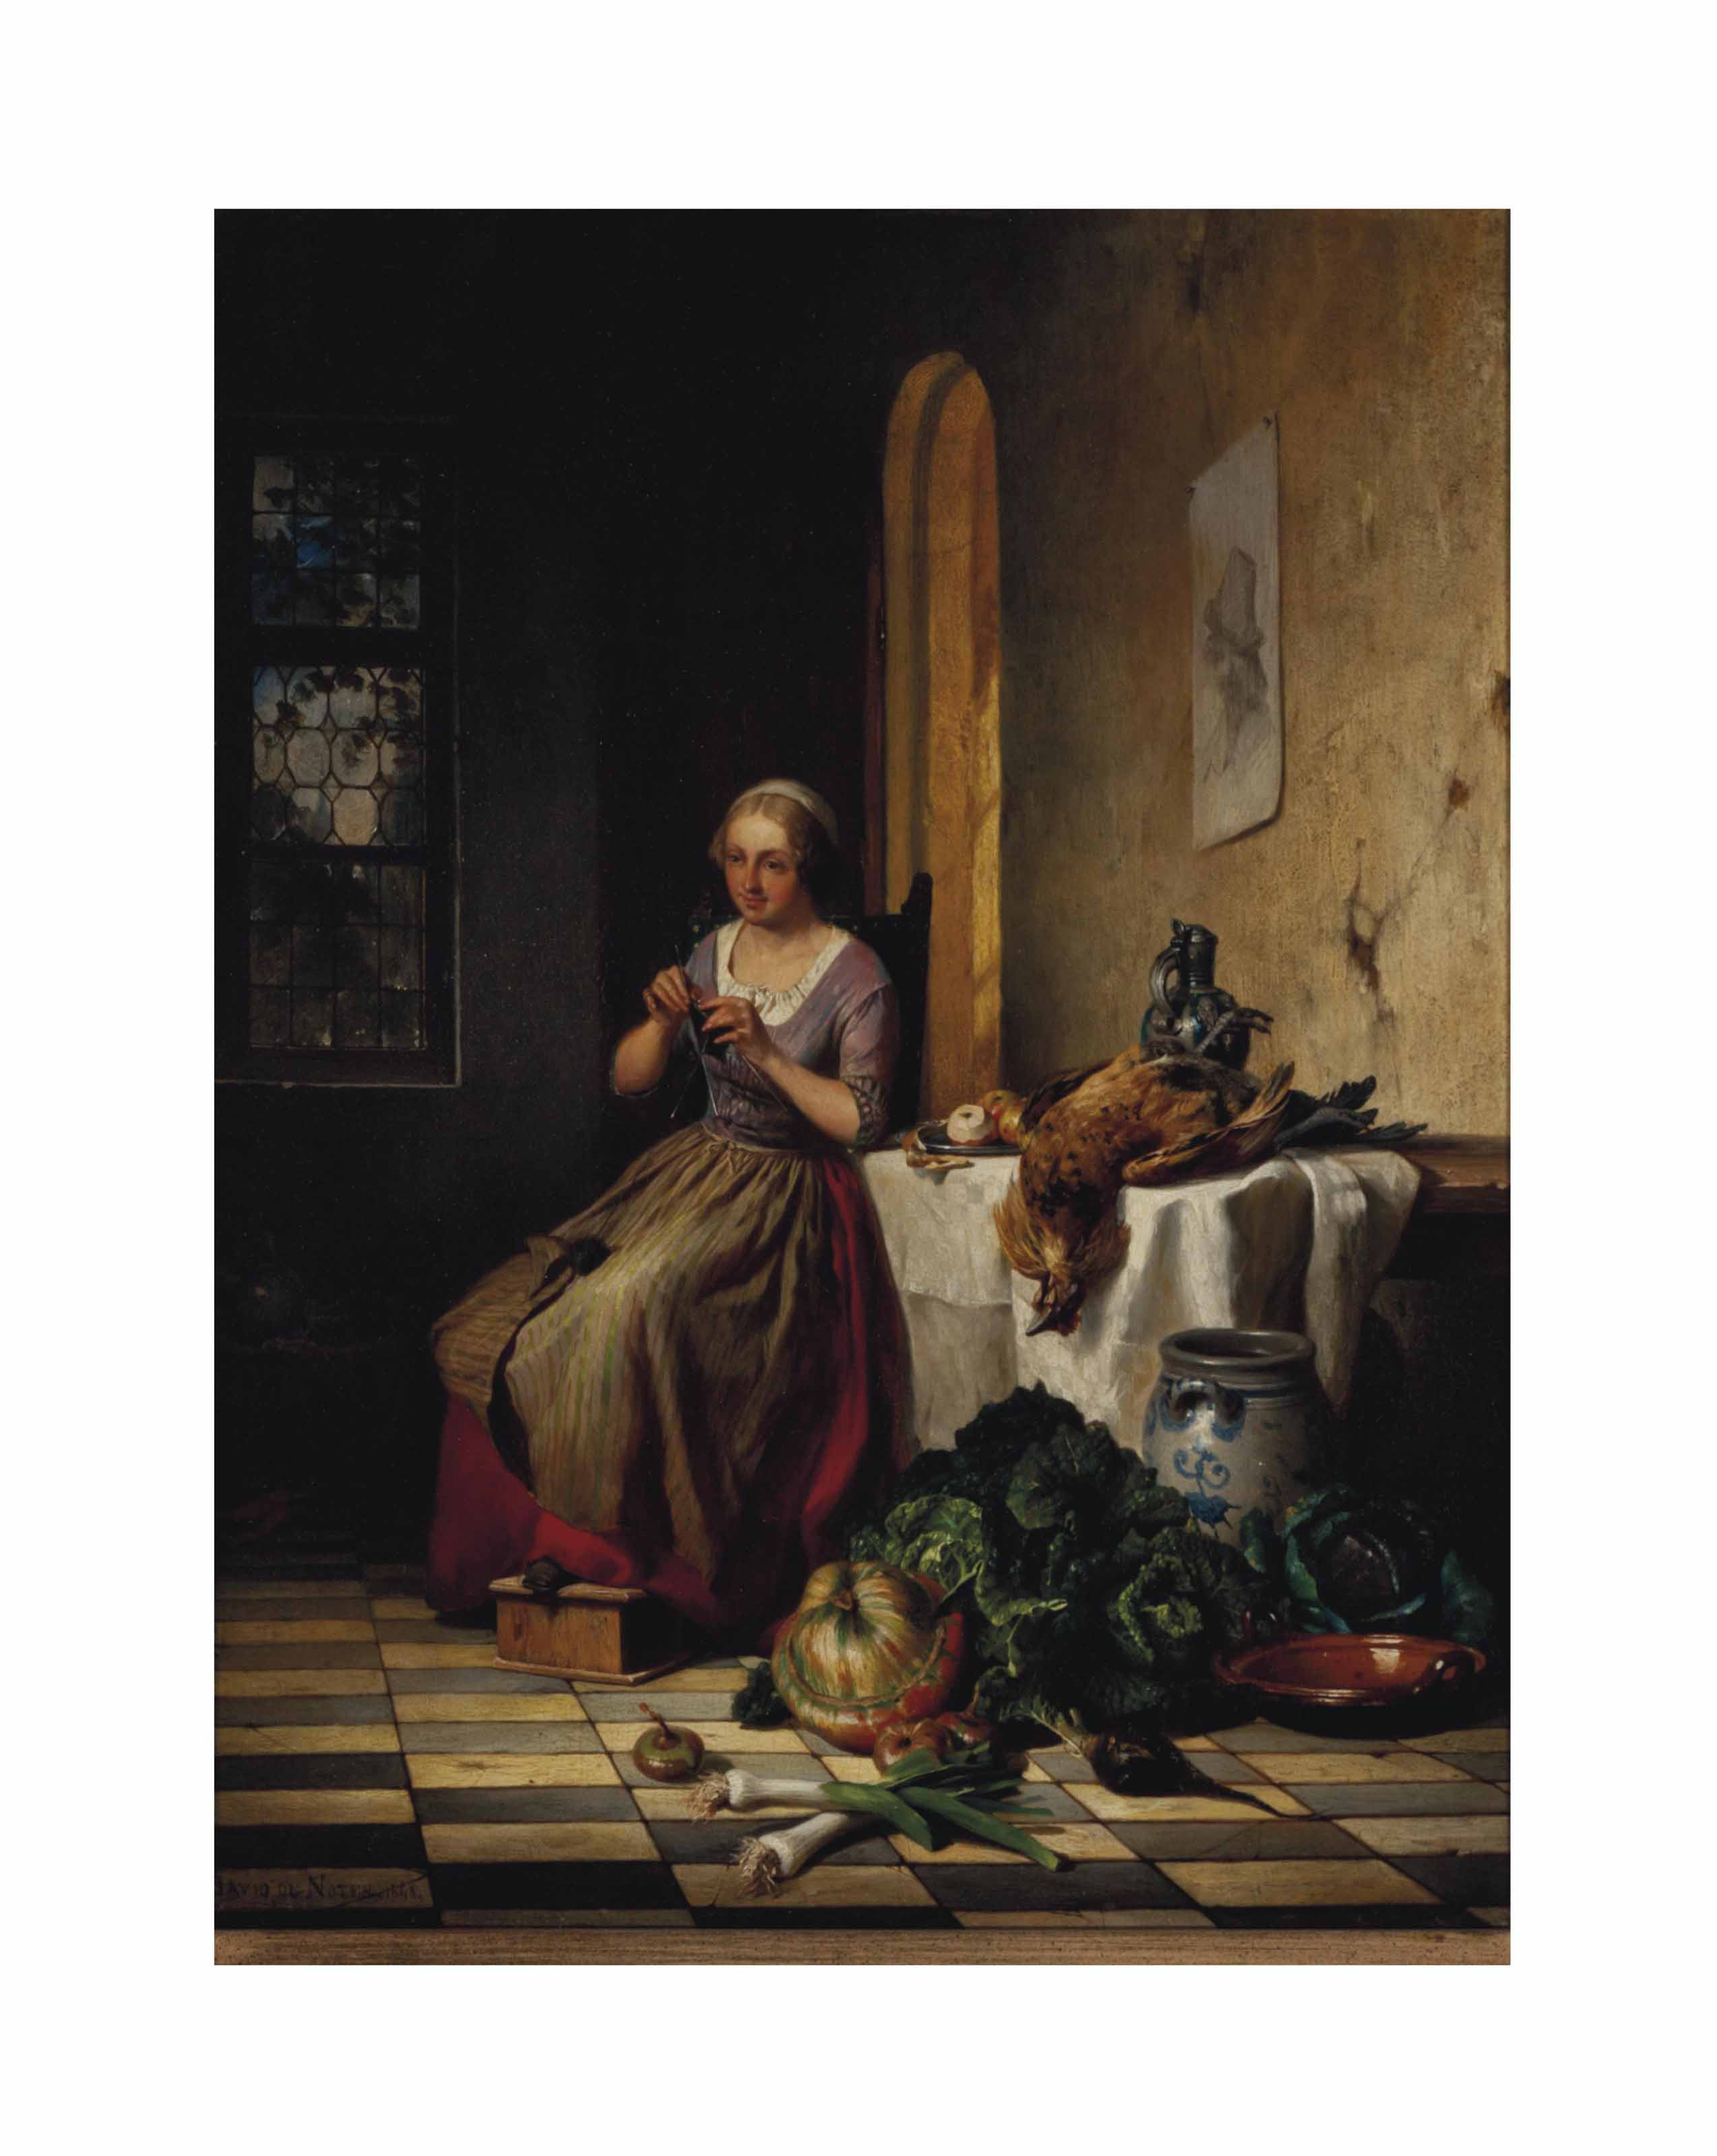 Woman knitting in an interior